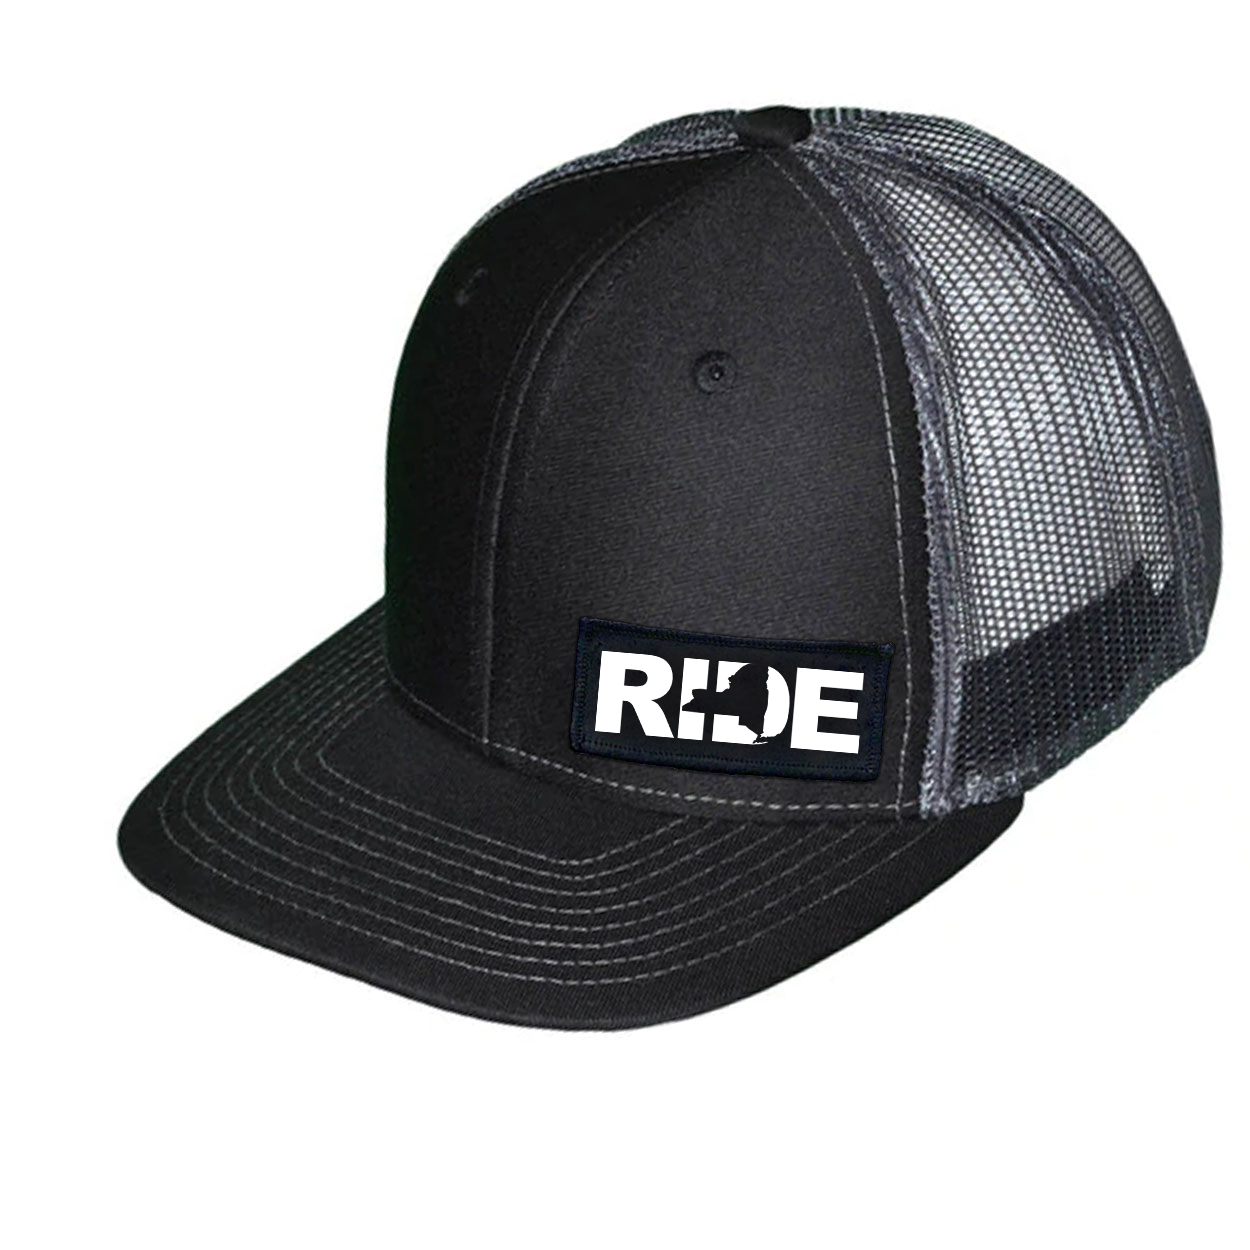 Ride New York Night Out Woven Patch Snapback Trucker Hat Black/Dark Gray (White Logo)